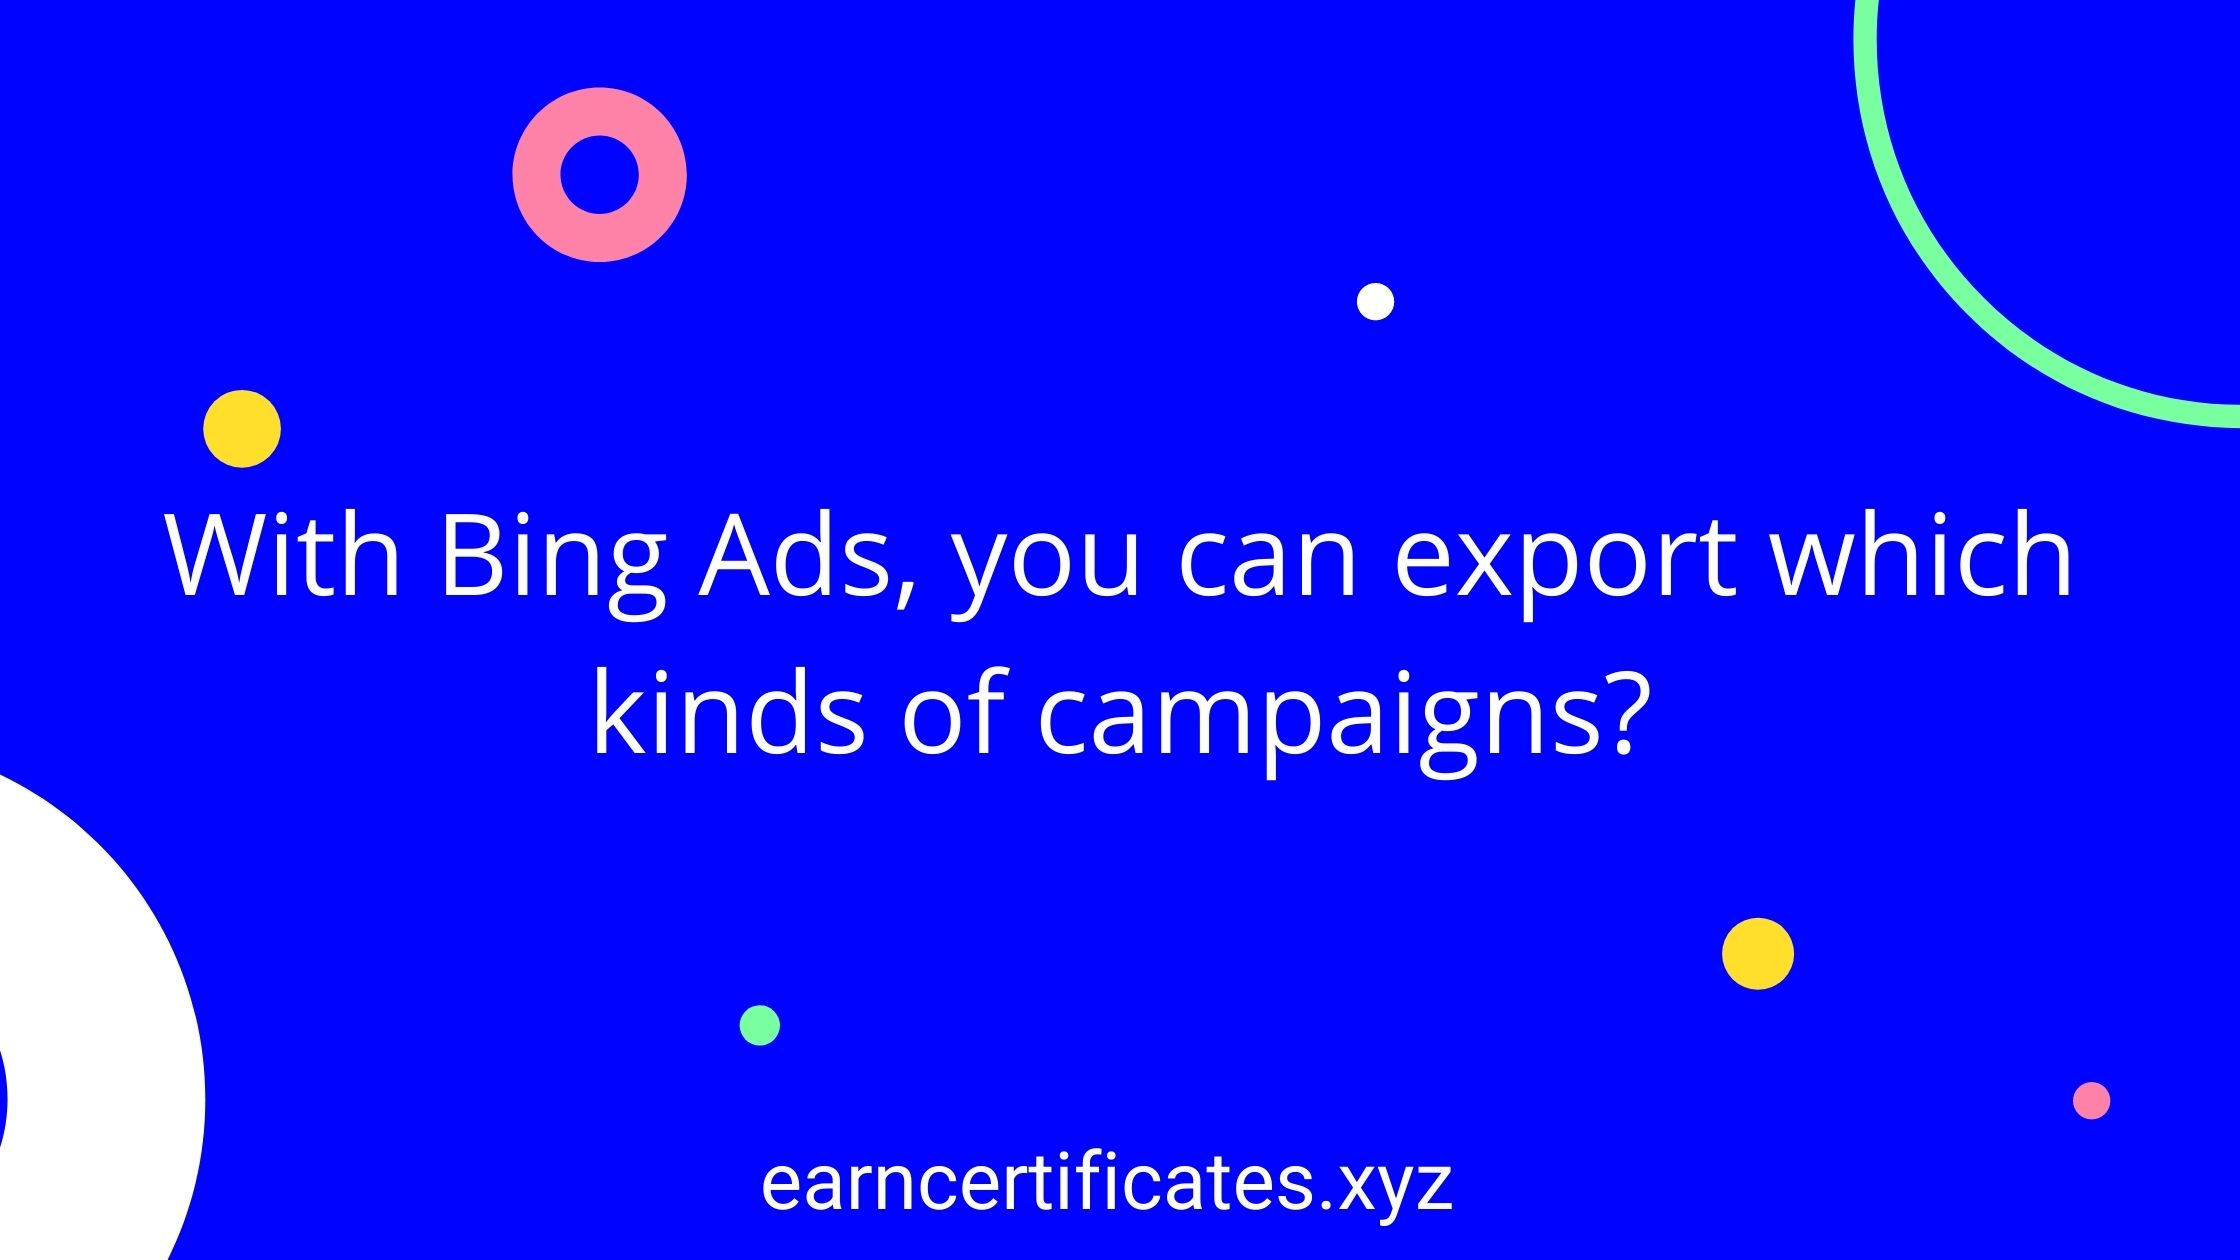 With Bing Ads, you can export which kinds of campaigns?